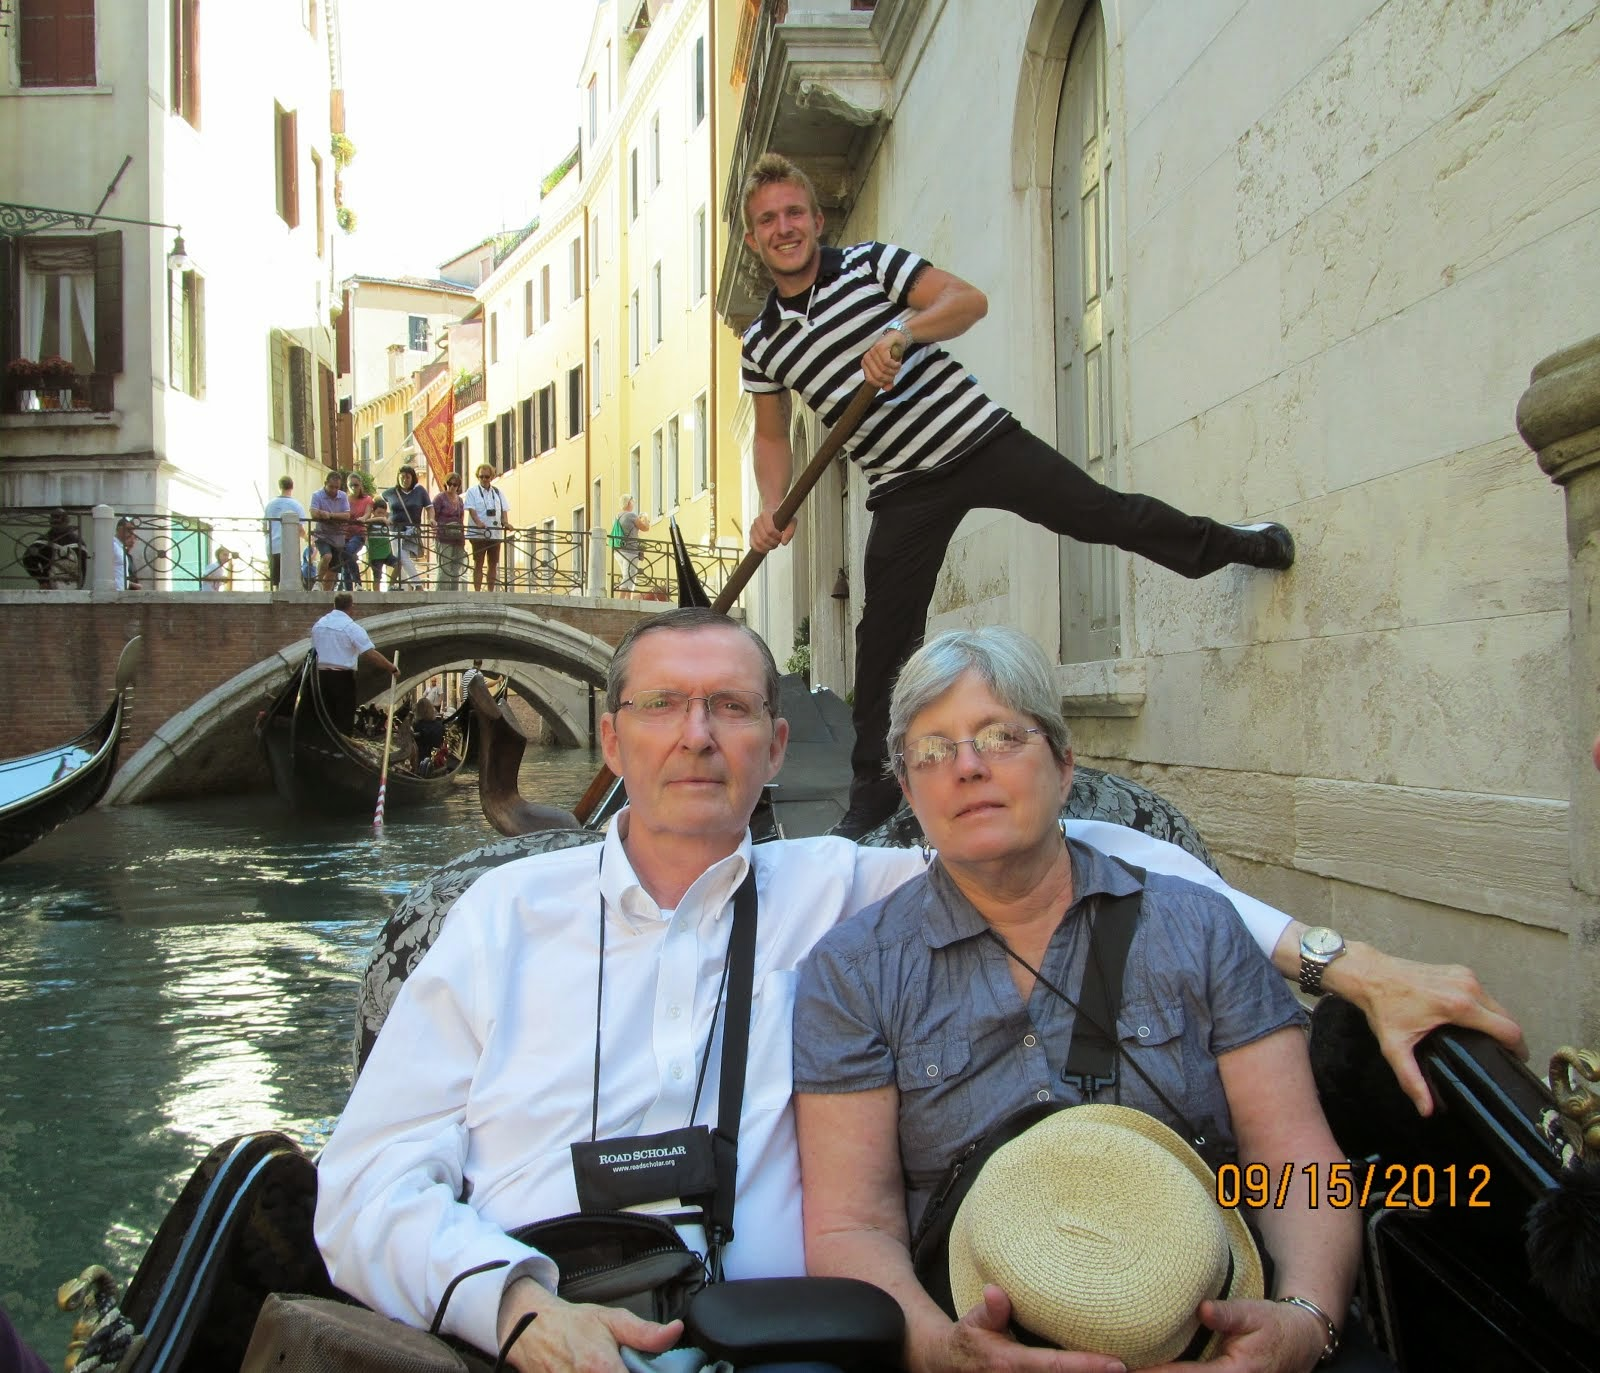 Honest - we loved Venice, but the glare off the water...